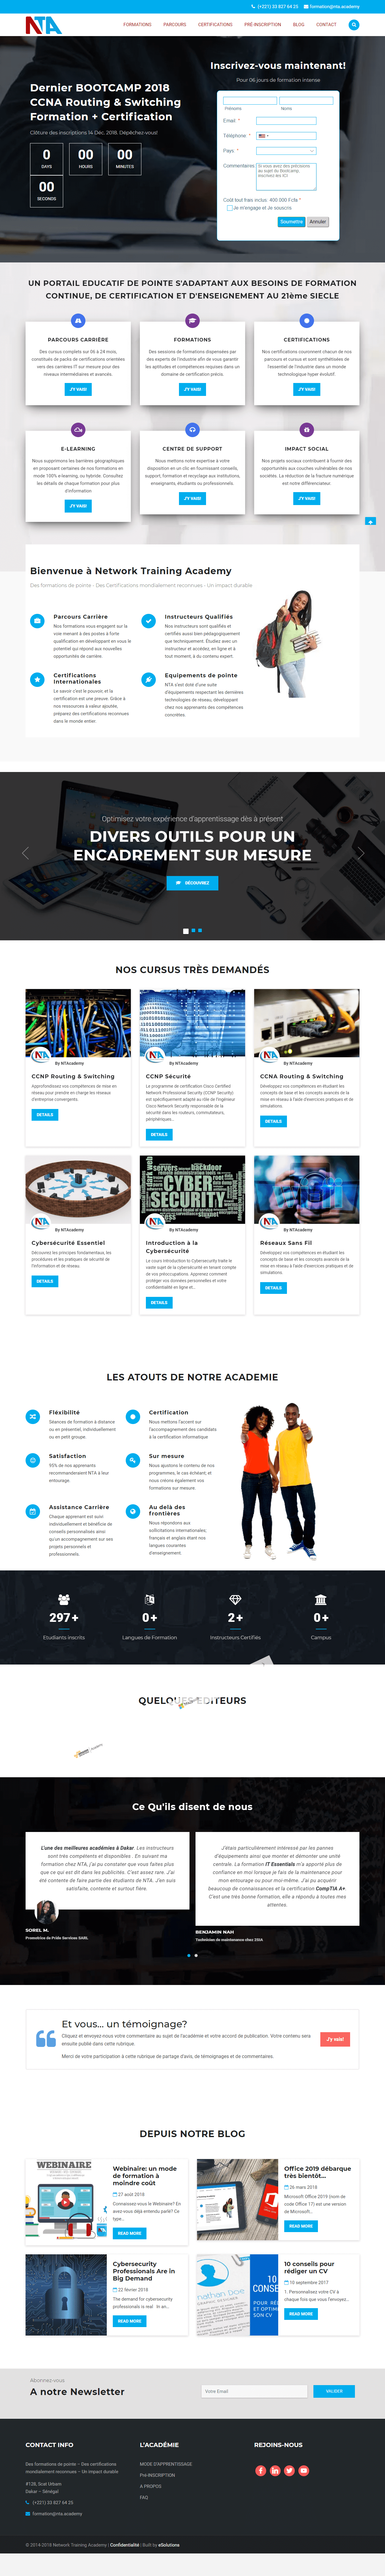 Agence digitale E-SOLUTIONS Portfolio 9